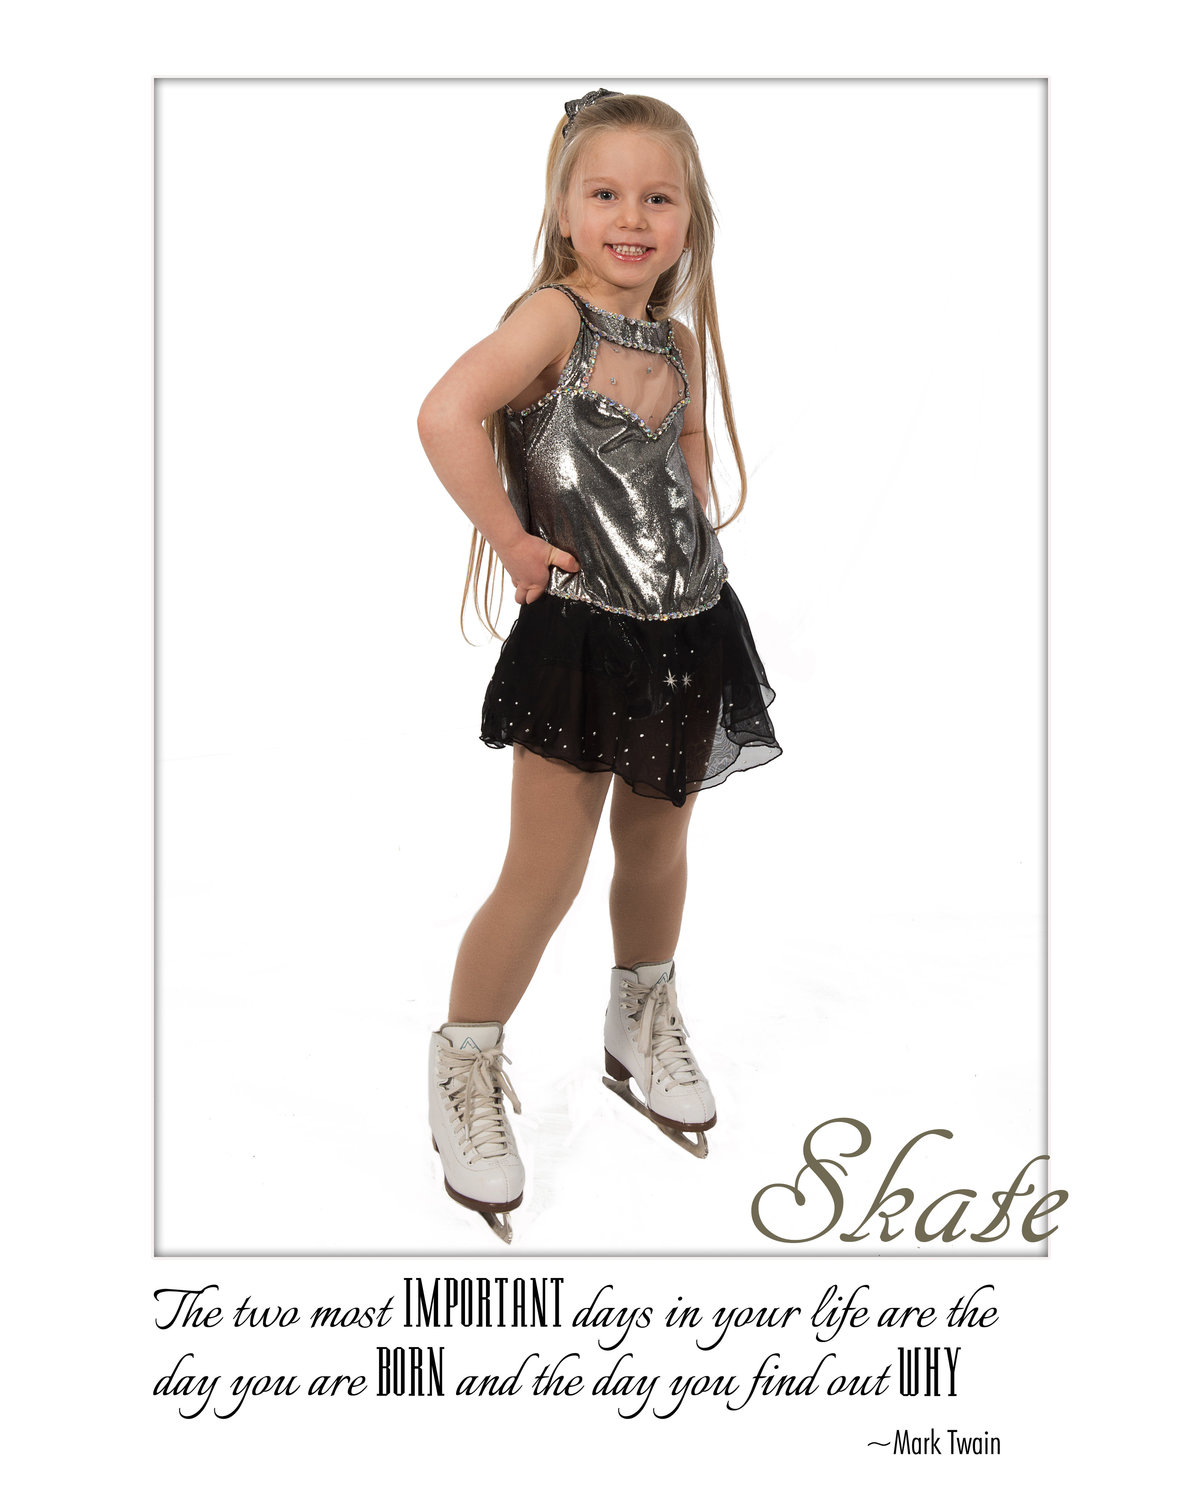 Edmonton_Figure_Skating_Photographer_10